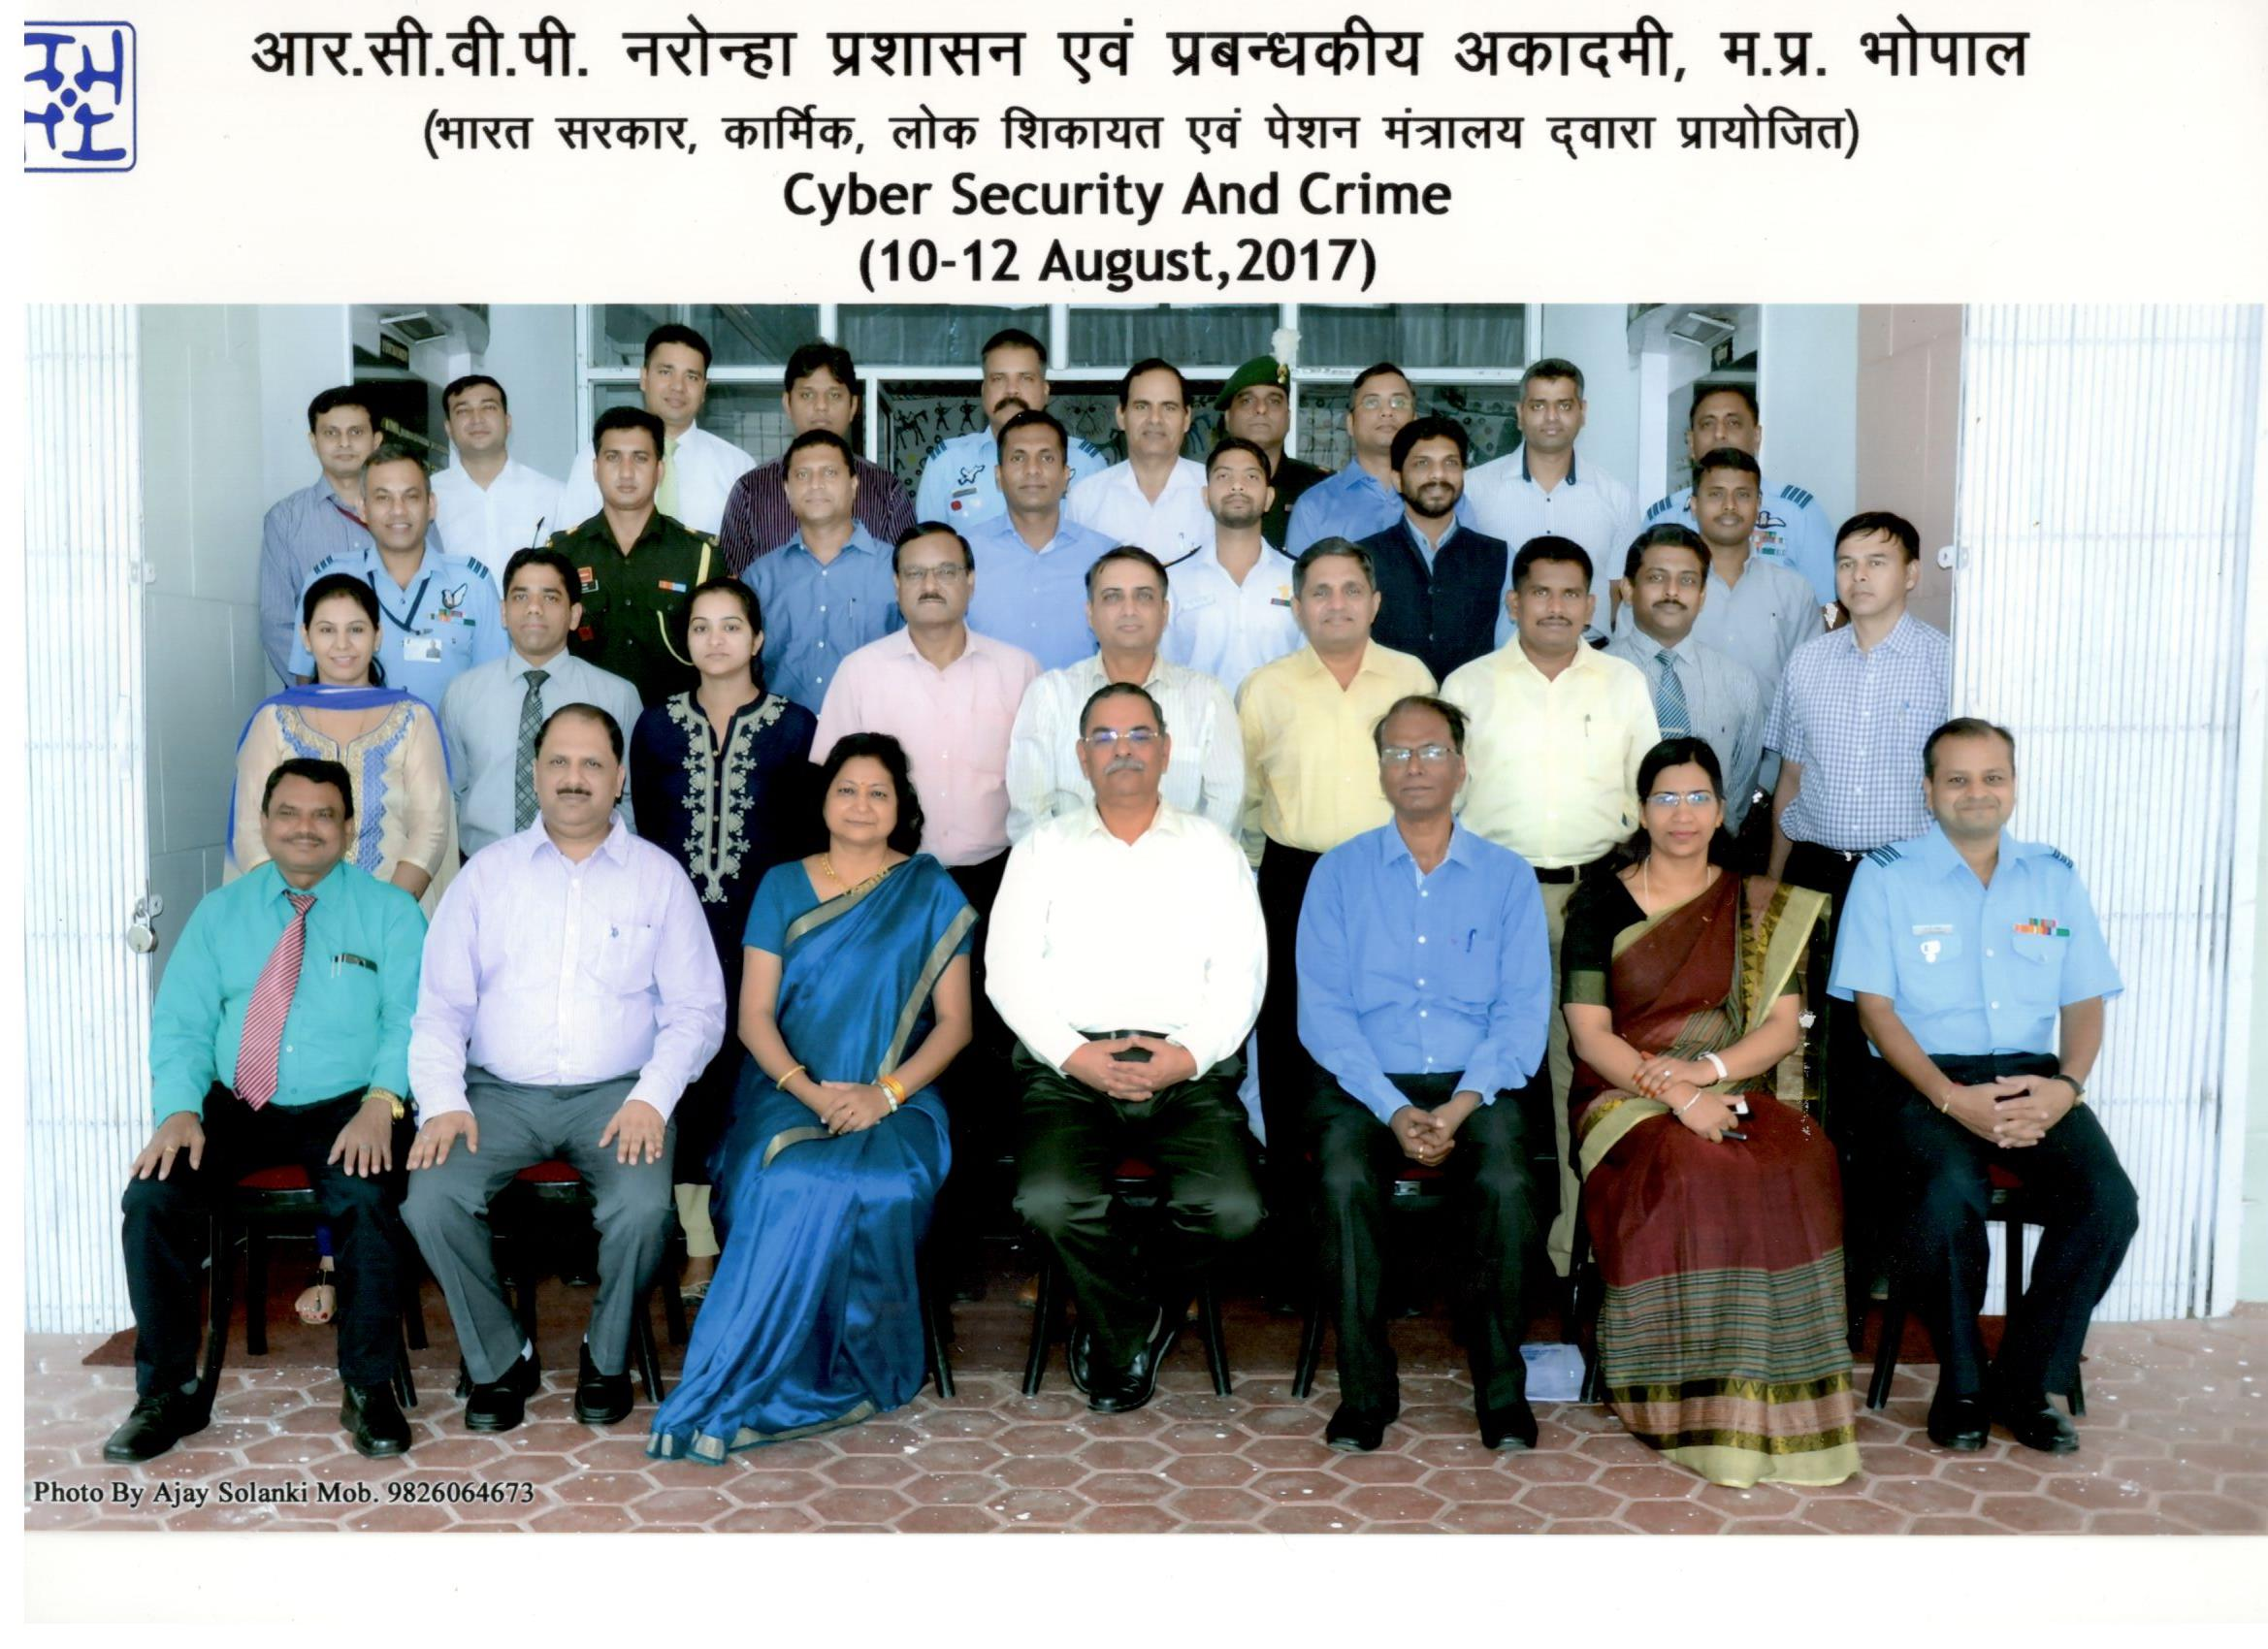 Defence Officers with Smt. Kanchan Jain, Director General Academy of Administration